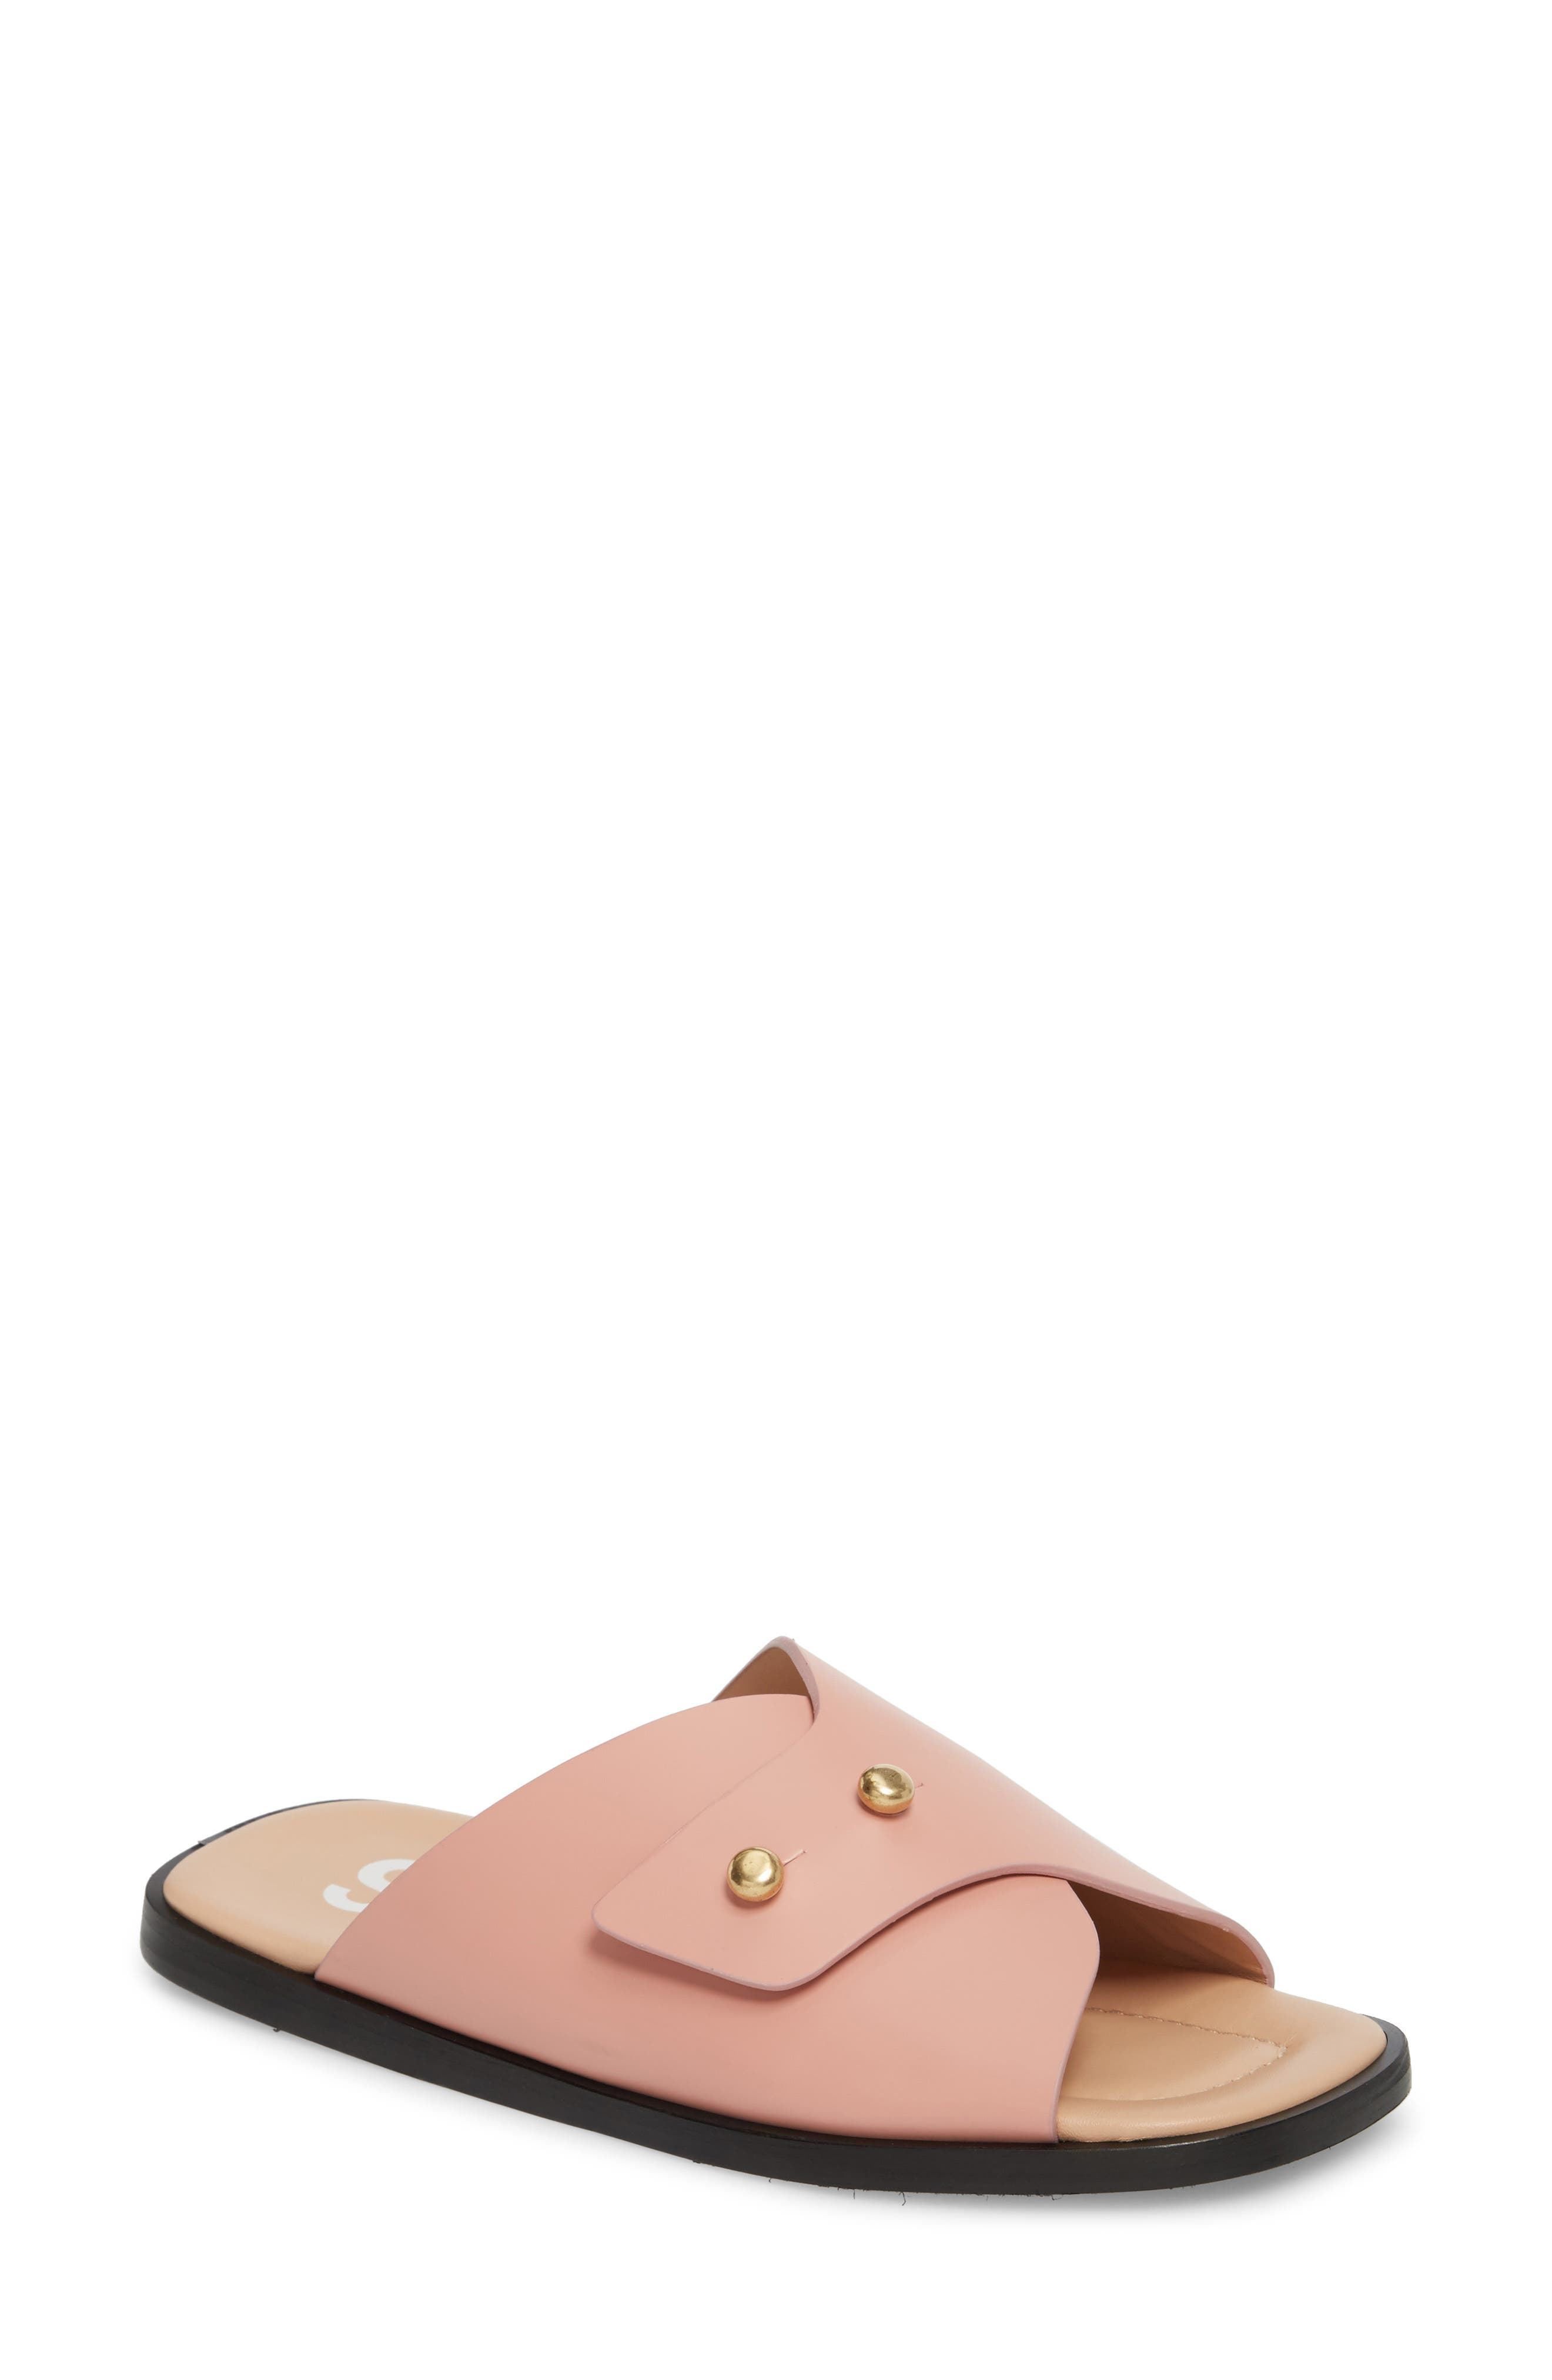 Jilly Studded Slide Sandal,                             Main thumbnail 1, color,                             Pink